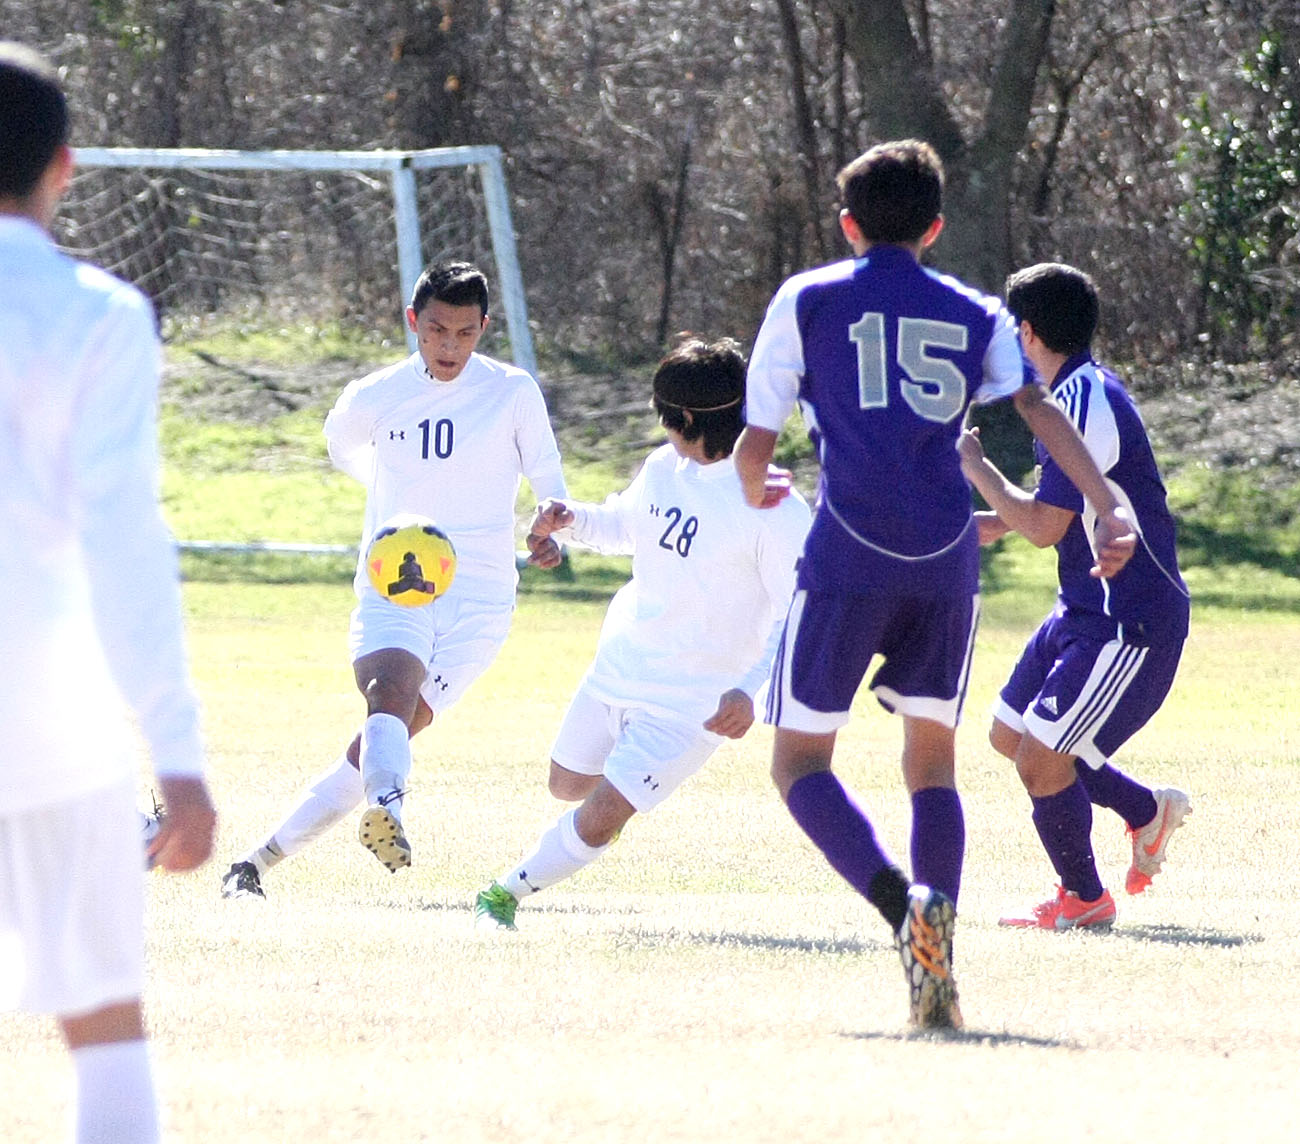 Felipe Espinoza, 10, scored the second goal in Stephenville's 3-0 win at Burkburnett Tuesday. || Photo by BRAD KEITH